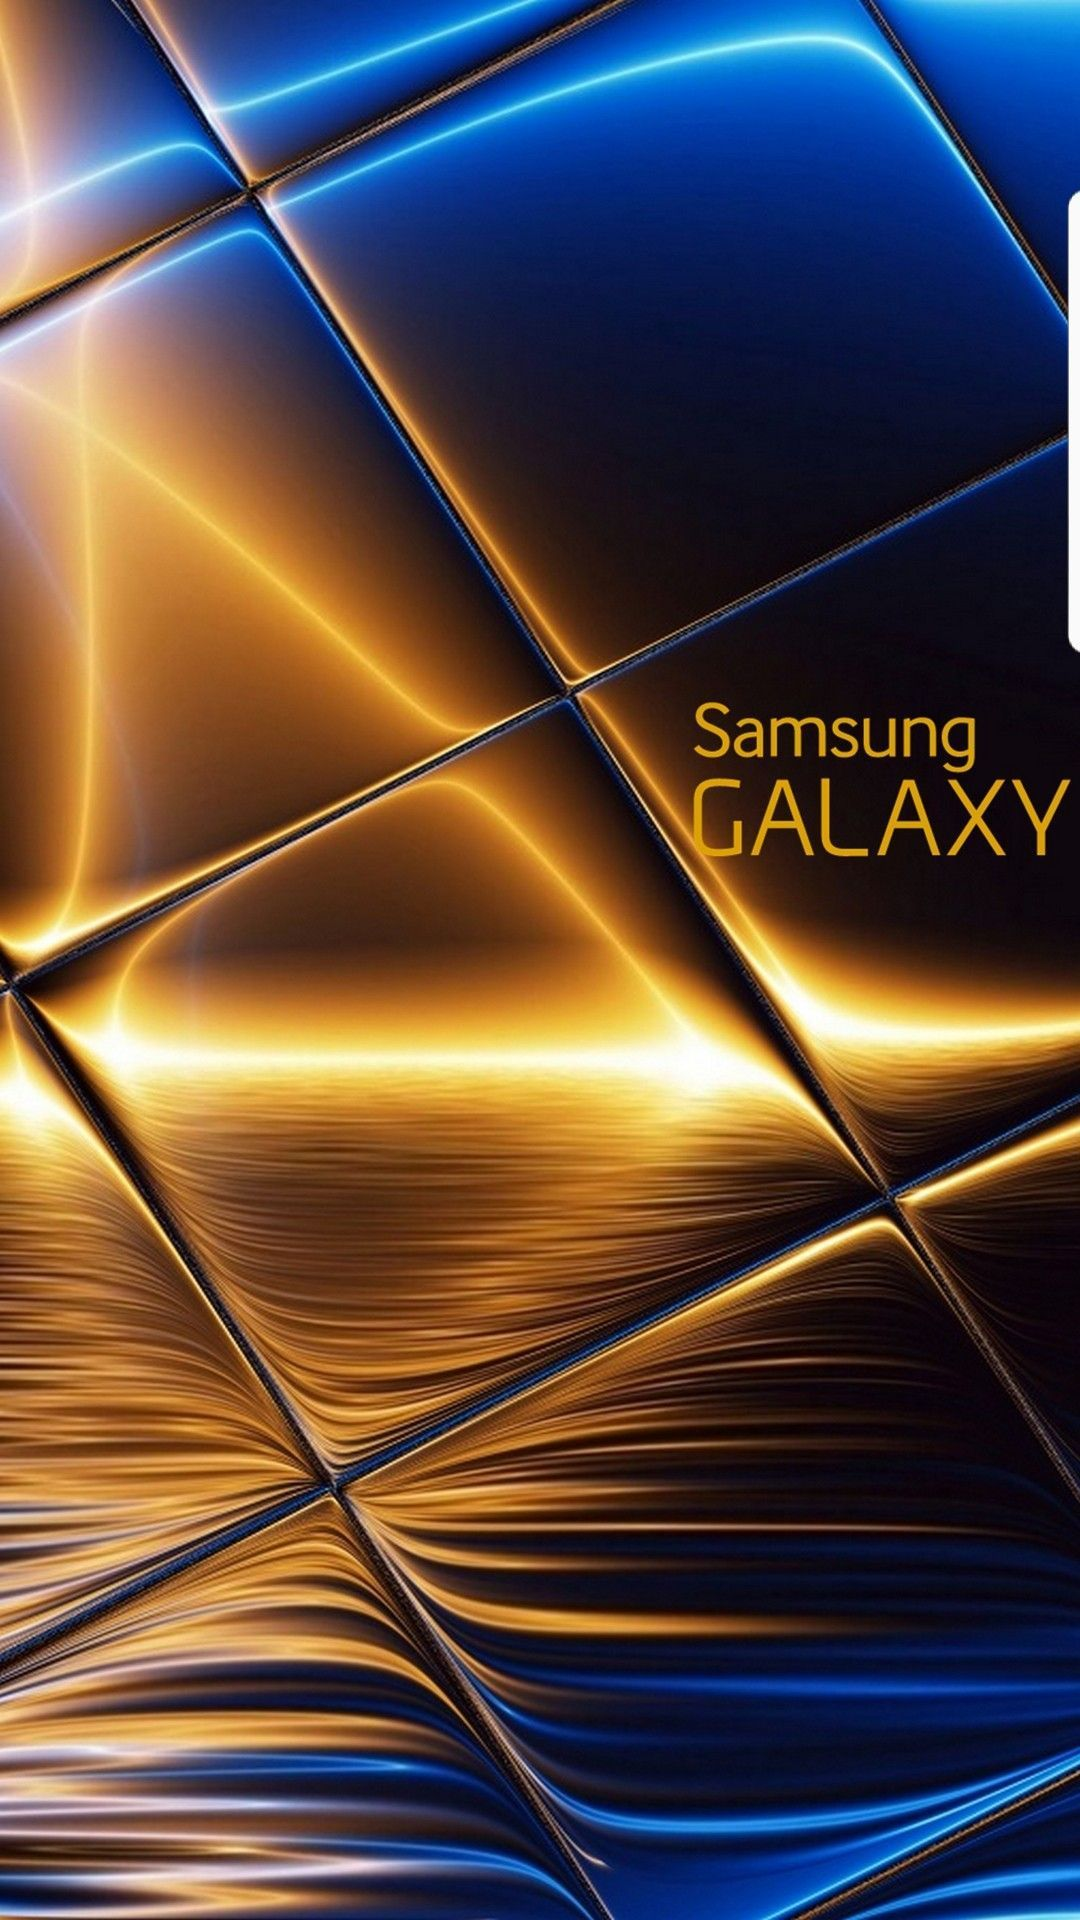 Samsung Iphone Edge Phonetelefon Hd Wallpaper Galaxy Wallpaper Wallpaper Ponsel Latar Belakang